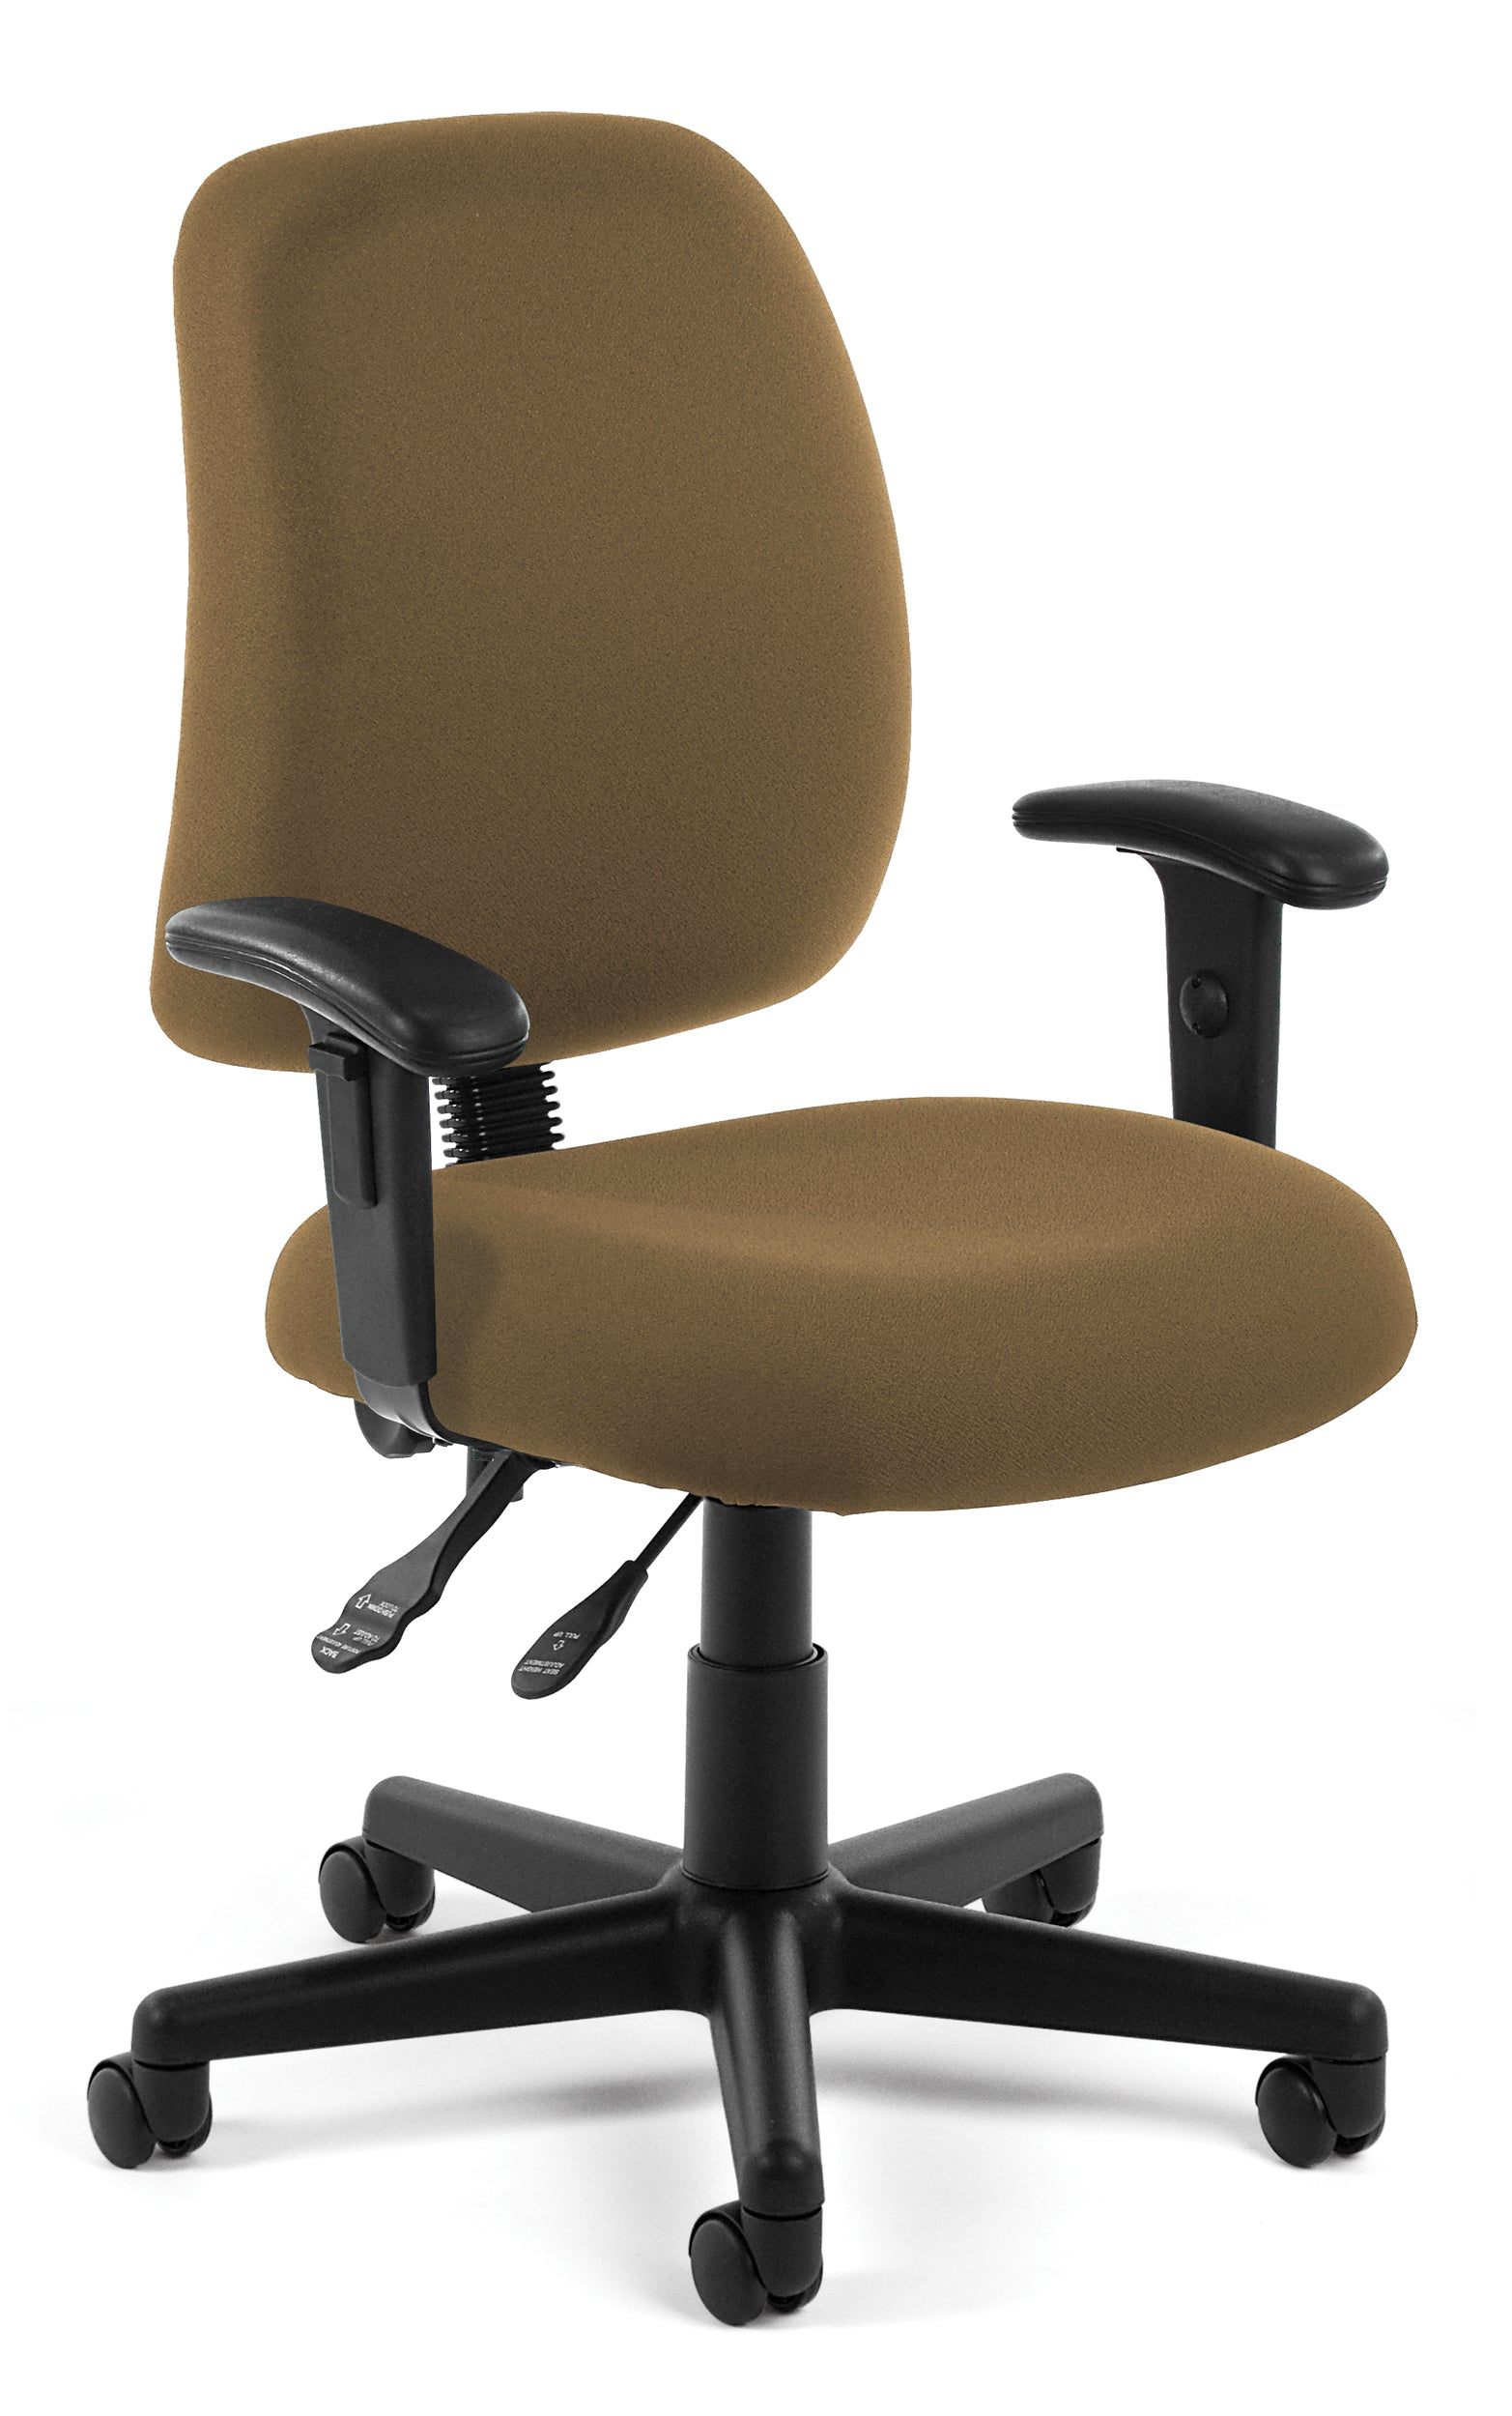 Ofminc Model 118-2-AA Posture Series Fabric Swivel Task Arms Chair